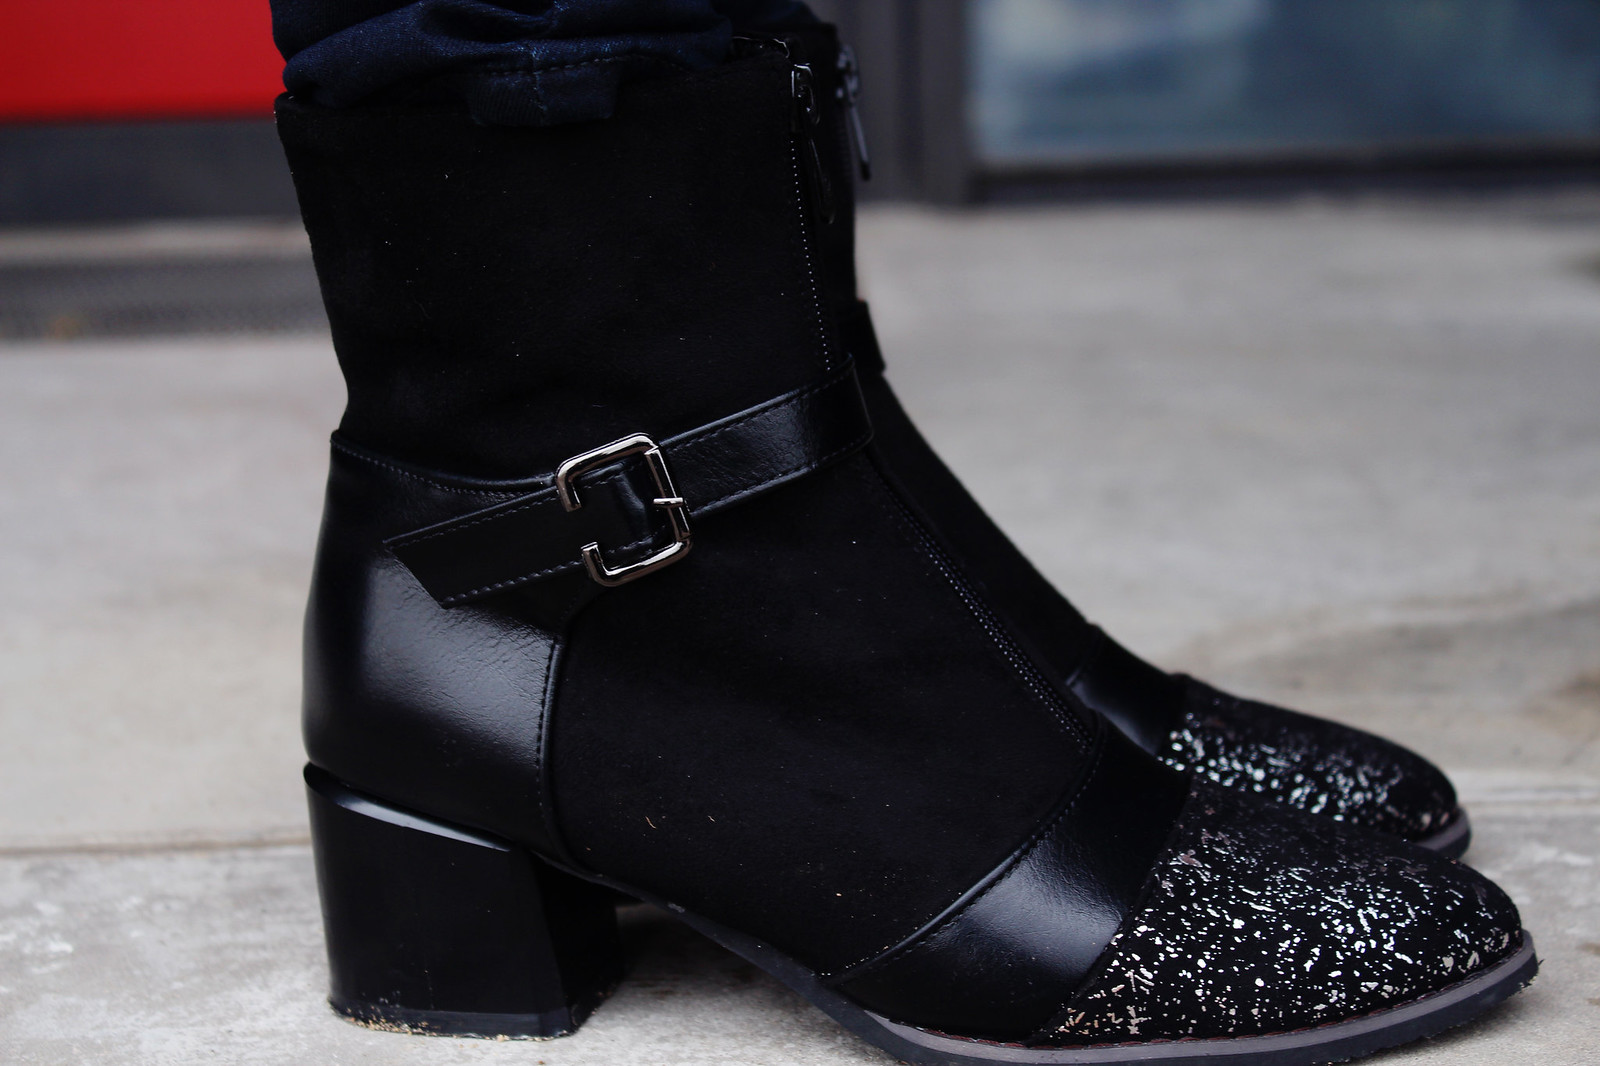 Edgy style boots